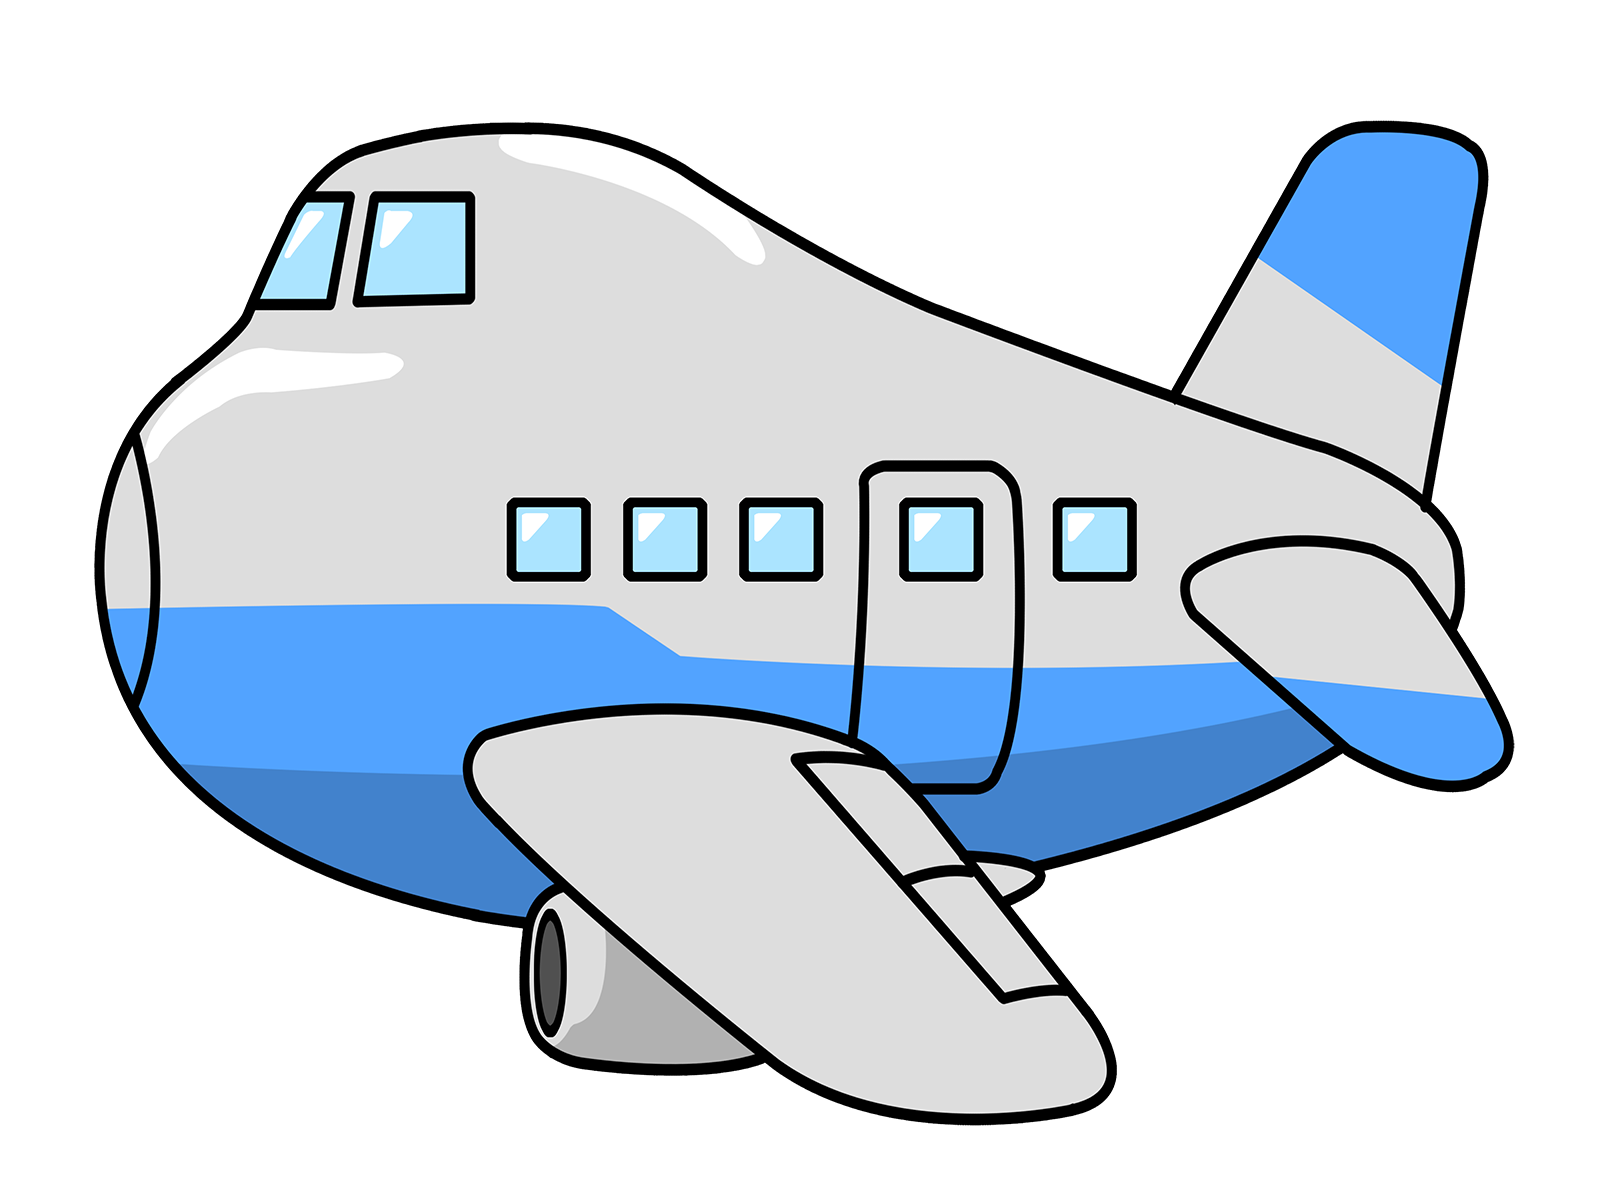 clipart airplane-clipart airplane-2